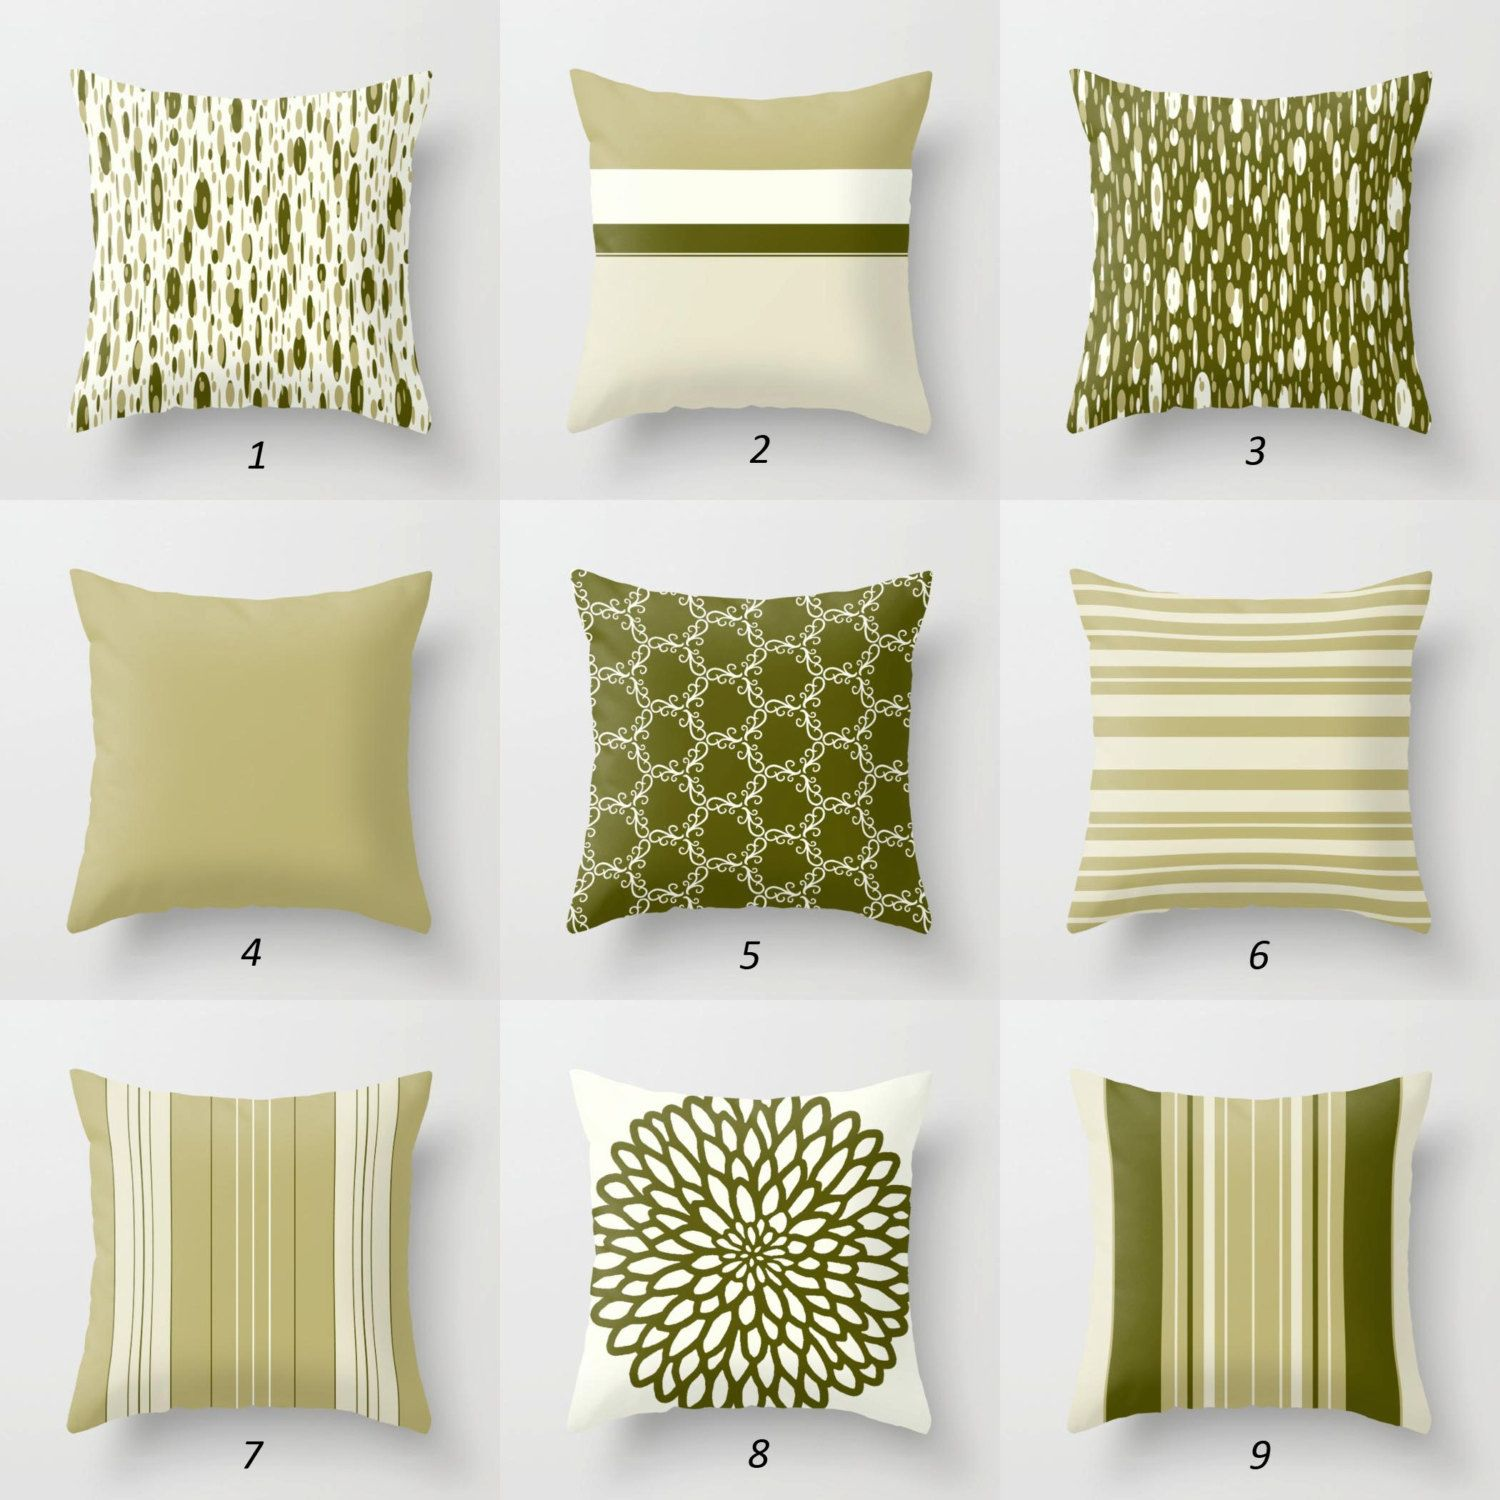 Olive Green Pillow Covers Dark Green Throw Pillows Striped Etsy Green Pillow Covers Olive Green Pillow Green Throw Pillows